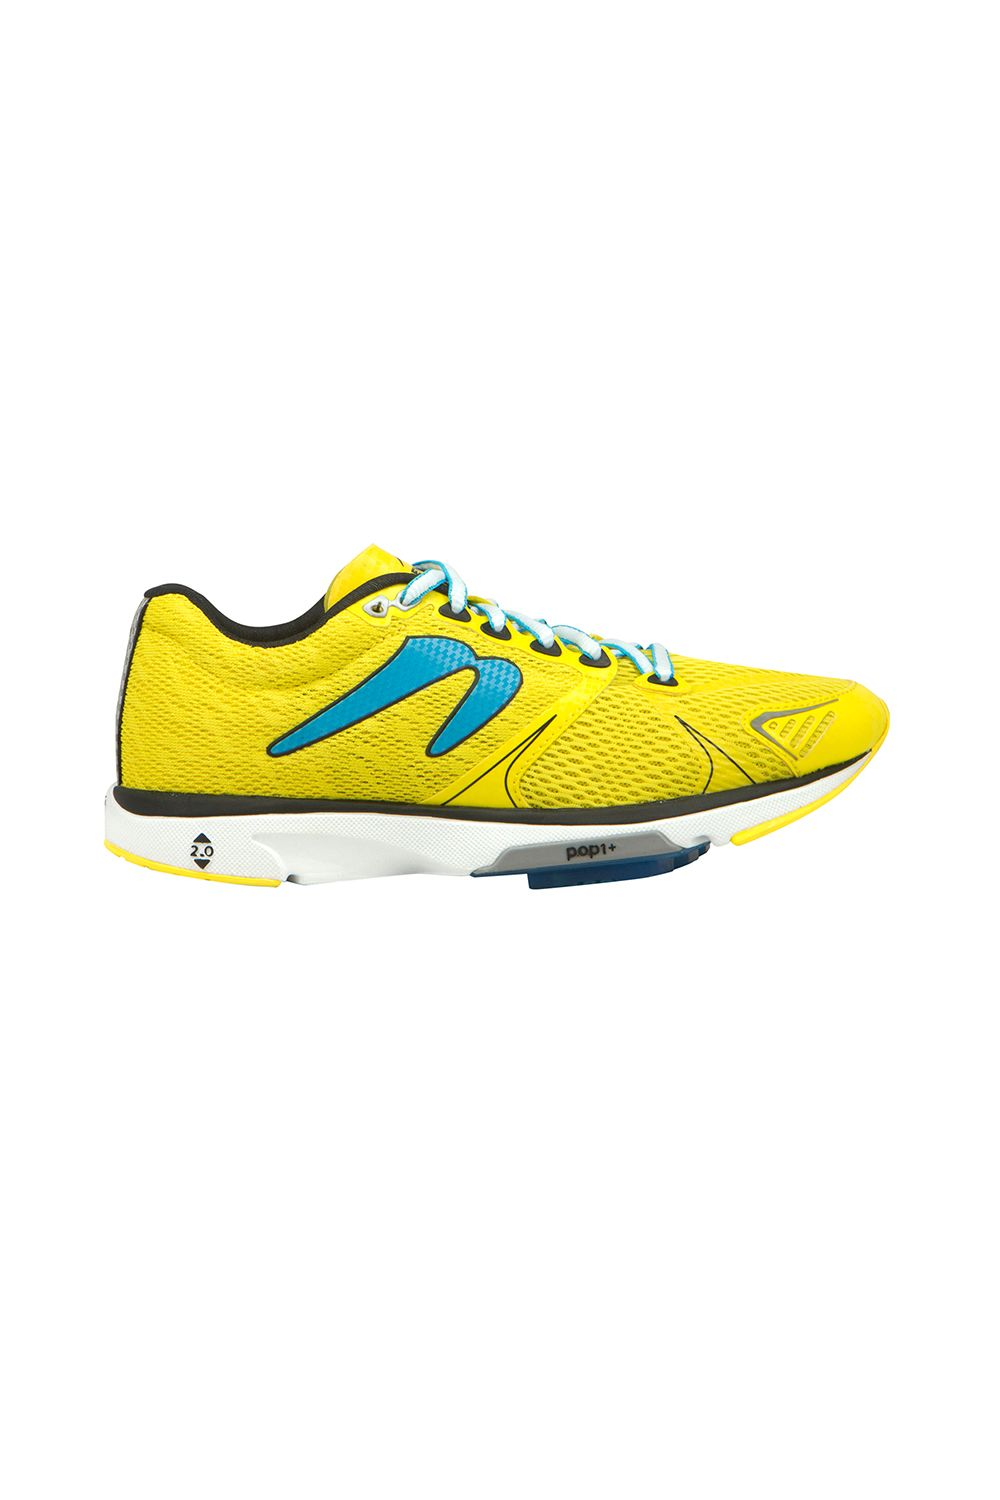 "<p>Aggressively yellow, like a push notification for you to get off the couch so you don't die young. </p><p>Newton, $100, <a href=""http://www.newtonrunning.com/womens-distance-v-b"" target=""_blank"" data-tracking-id=""recirc-text-link"">newtonrunning.com</a>.</p>"